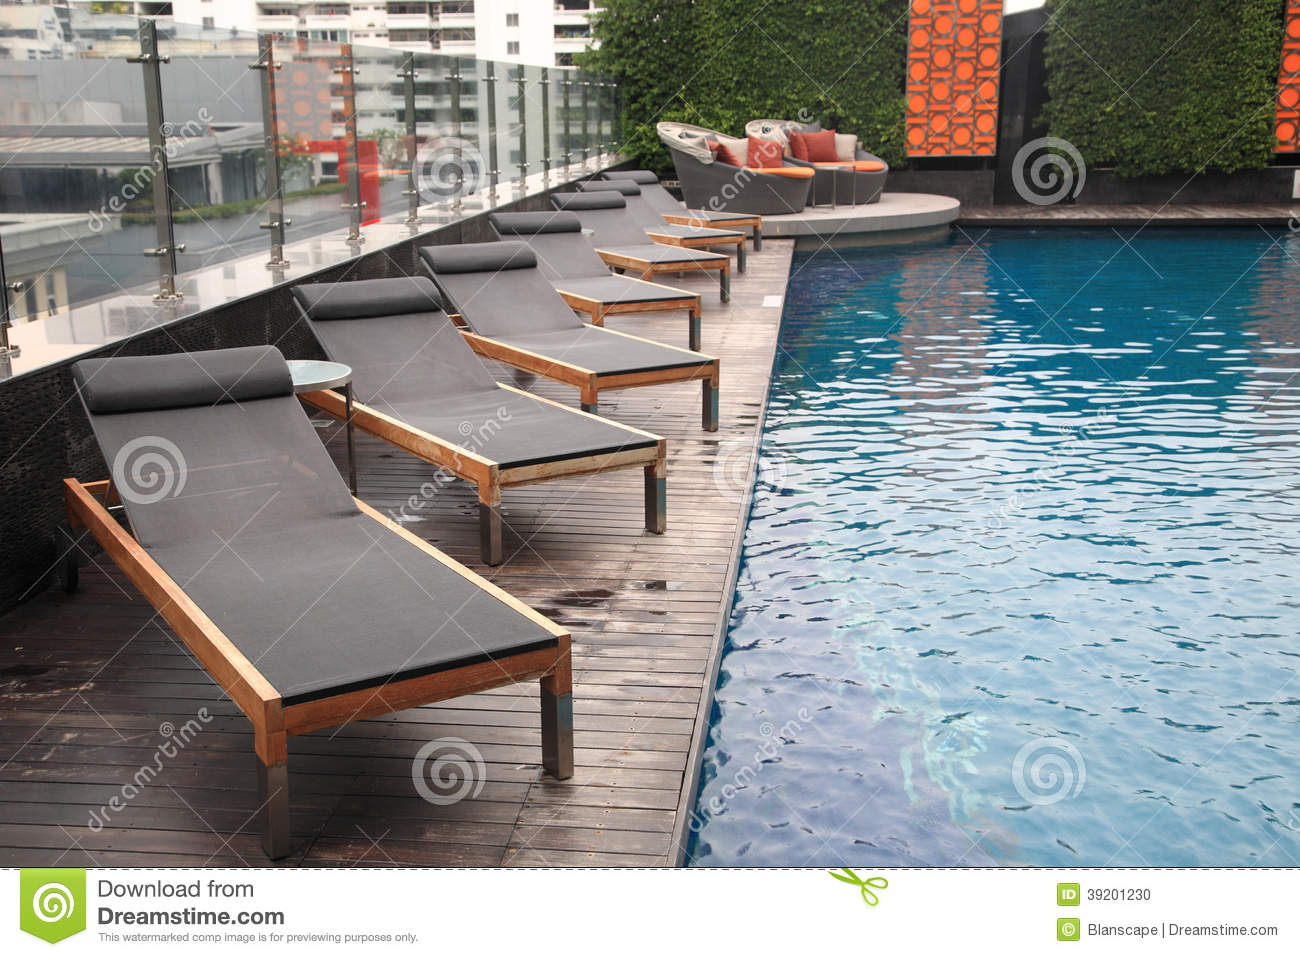 Piscine de luxe avec de longues chaises photo stock for Piscine de luxe